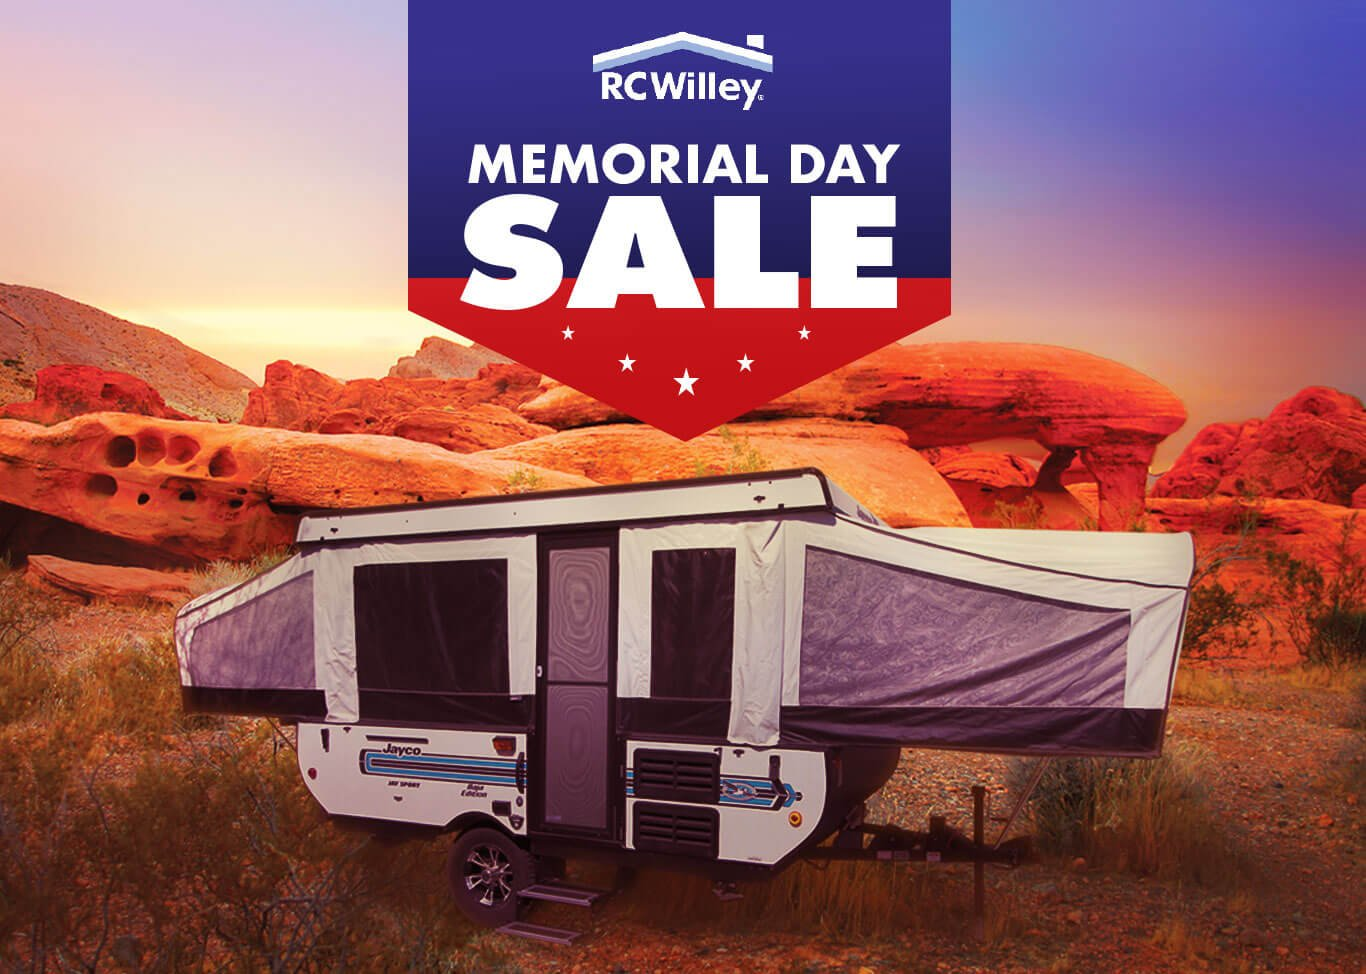 Memorial Day Sale Rc Willey Furniture Store